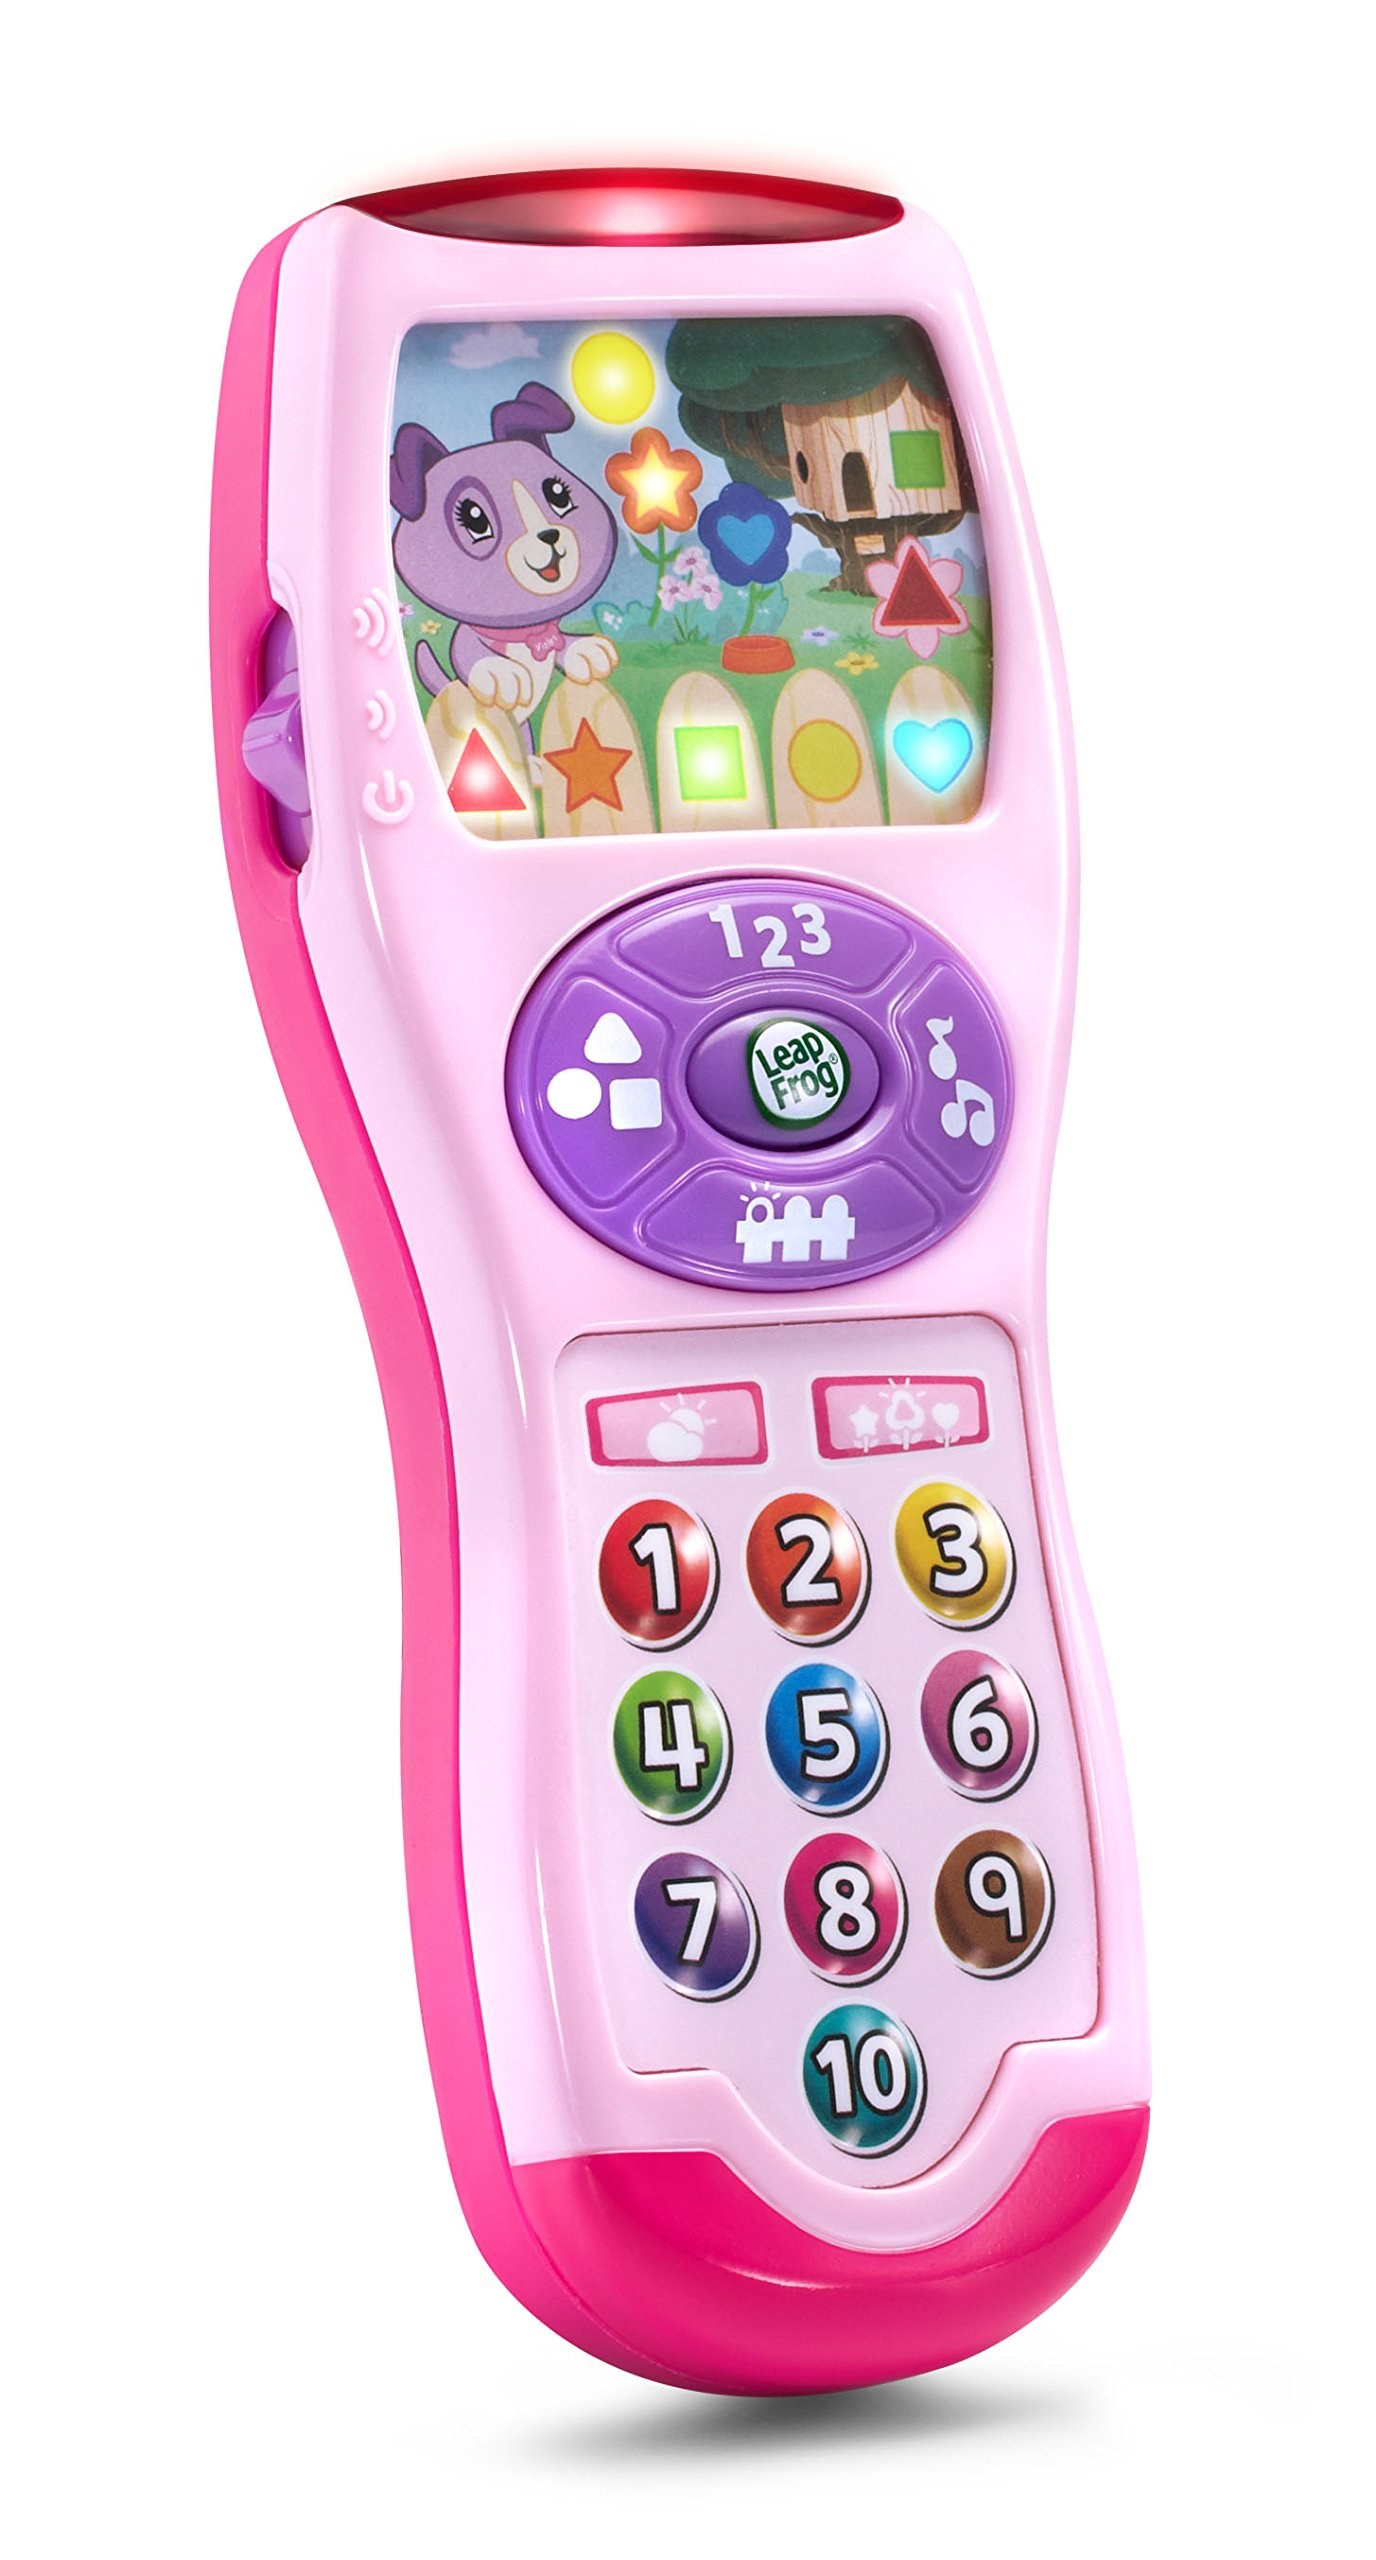 LeapFrog Violet's Learning Lights Remote, Pink, Great Gift for Kids, Toddlers, Toy for Boys and Girls, Ages Infant, 1, 2, 3